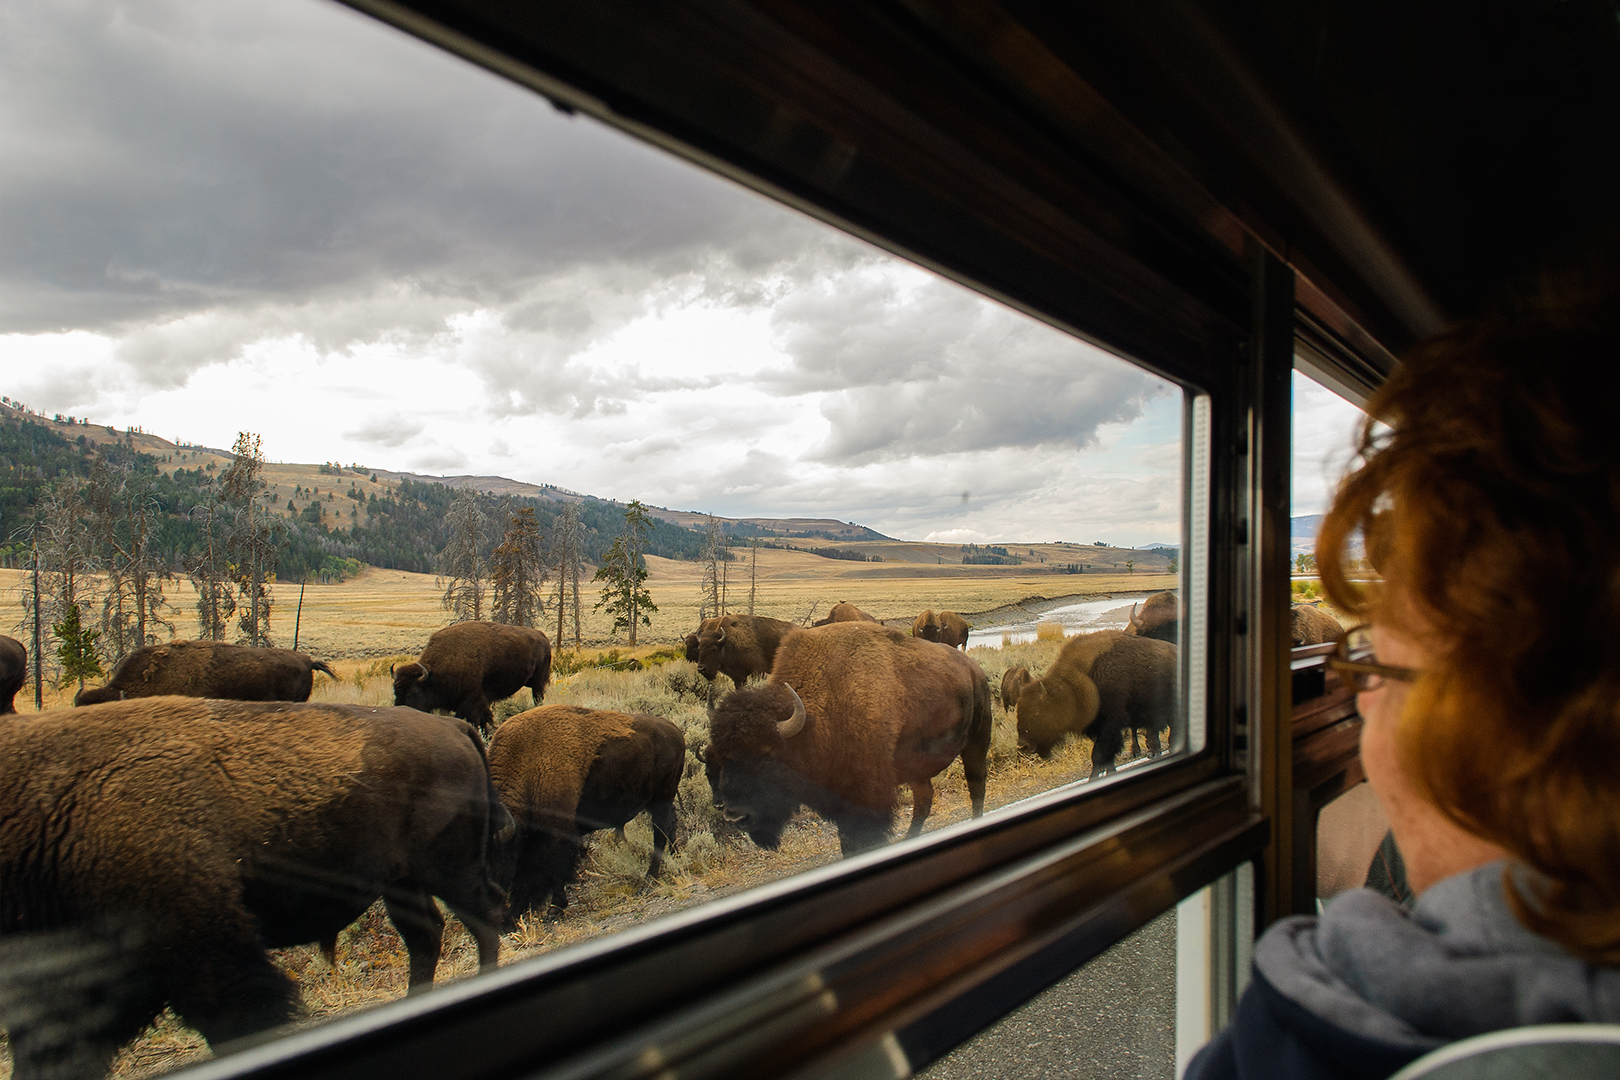 Bison on the Road, Lamar Valley